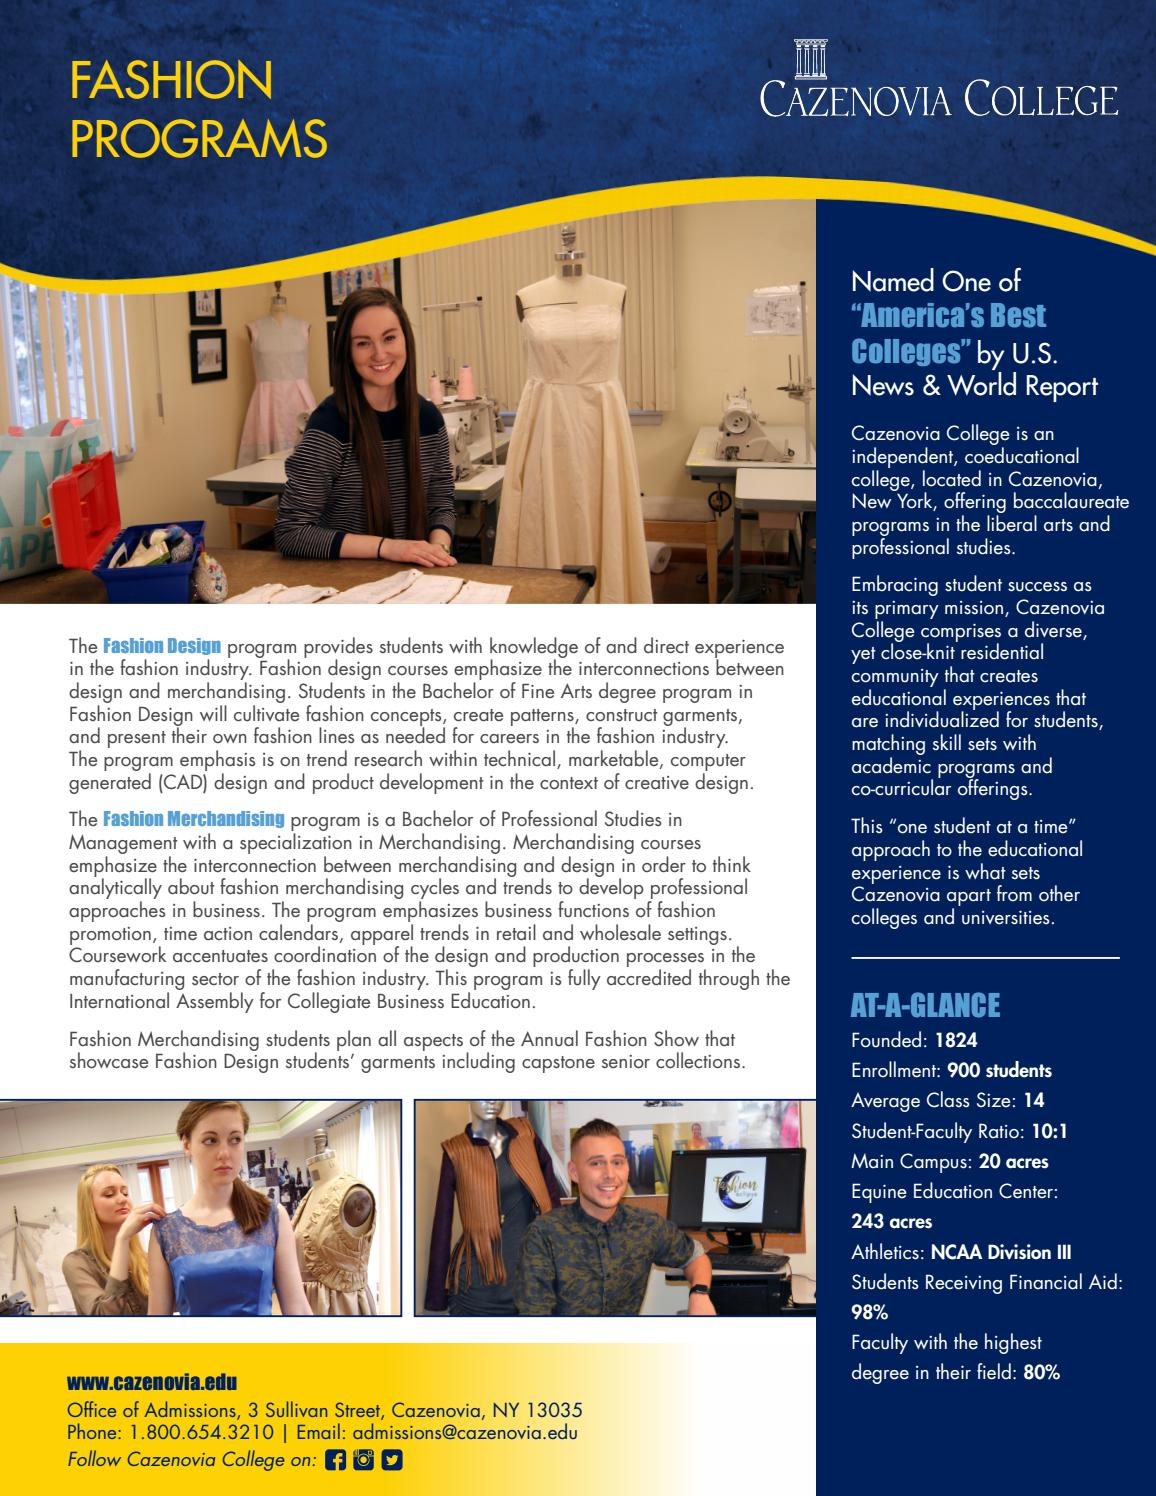 Fashion Programs Brochure By Cazenovia College Issuu